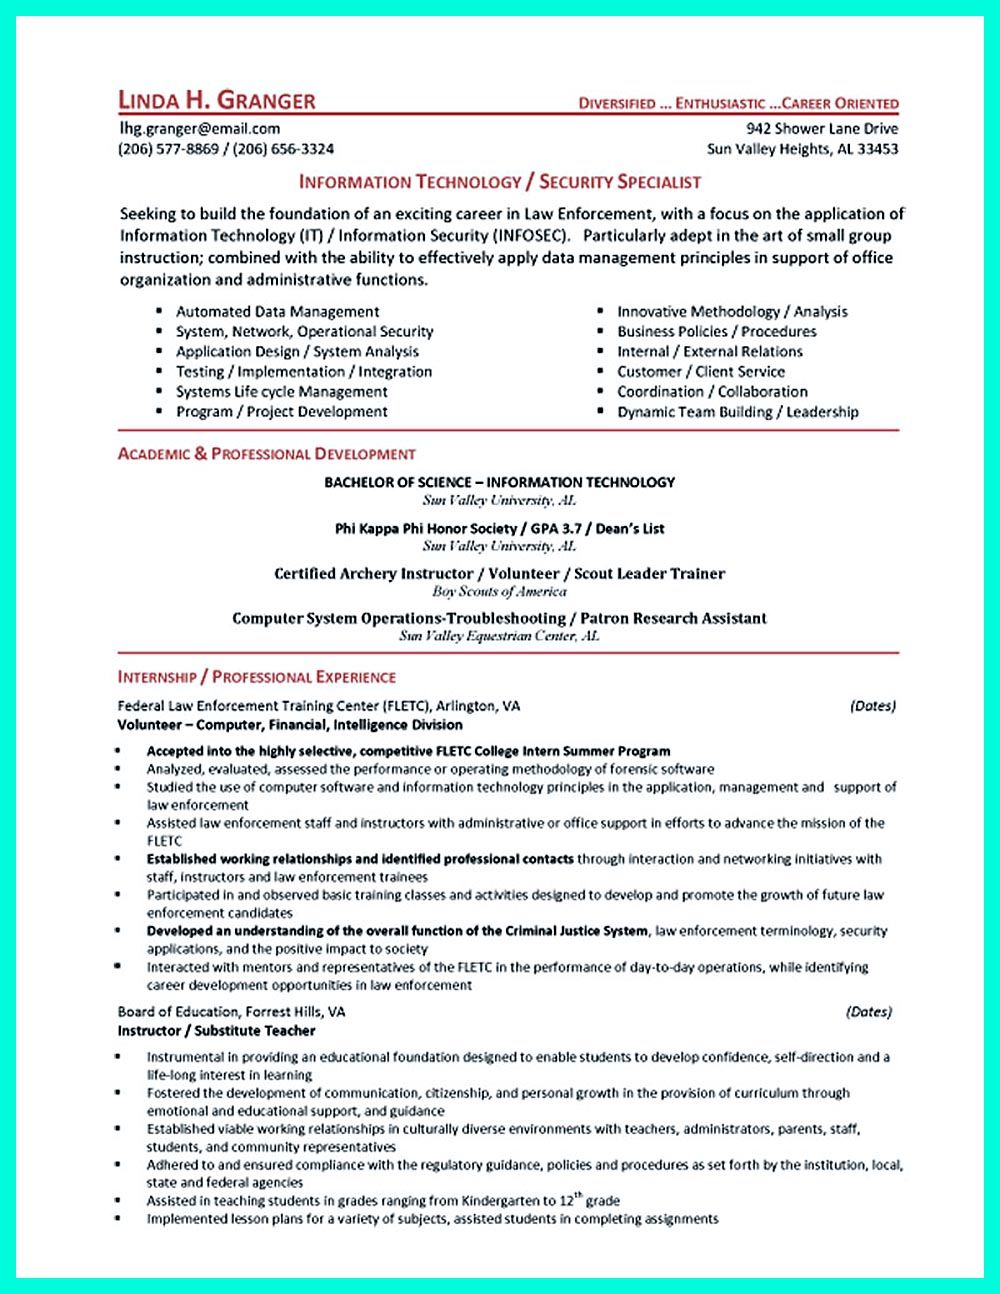 Find Resumes Cyber Security Resume Must Be Well Created To Get The Job Position